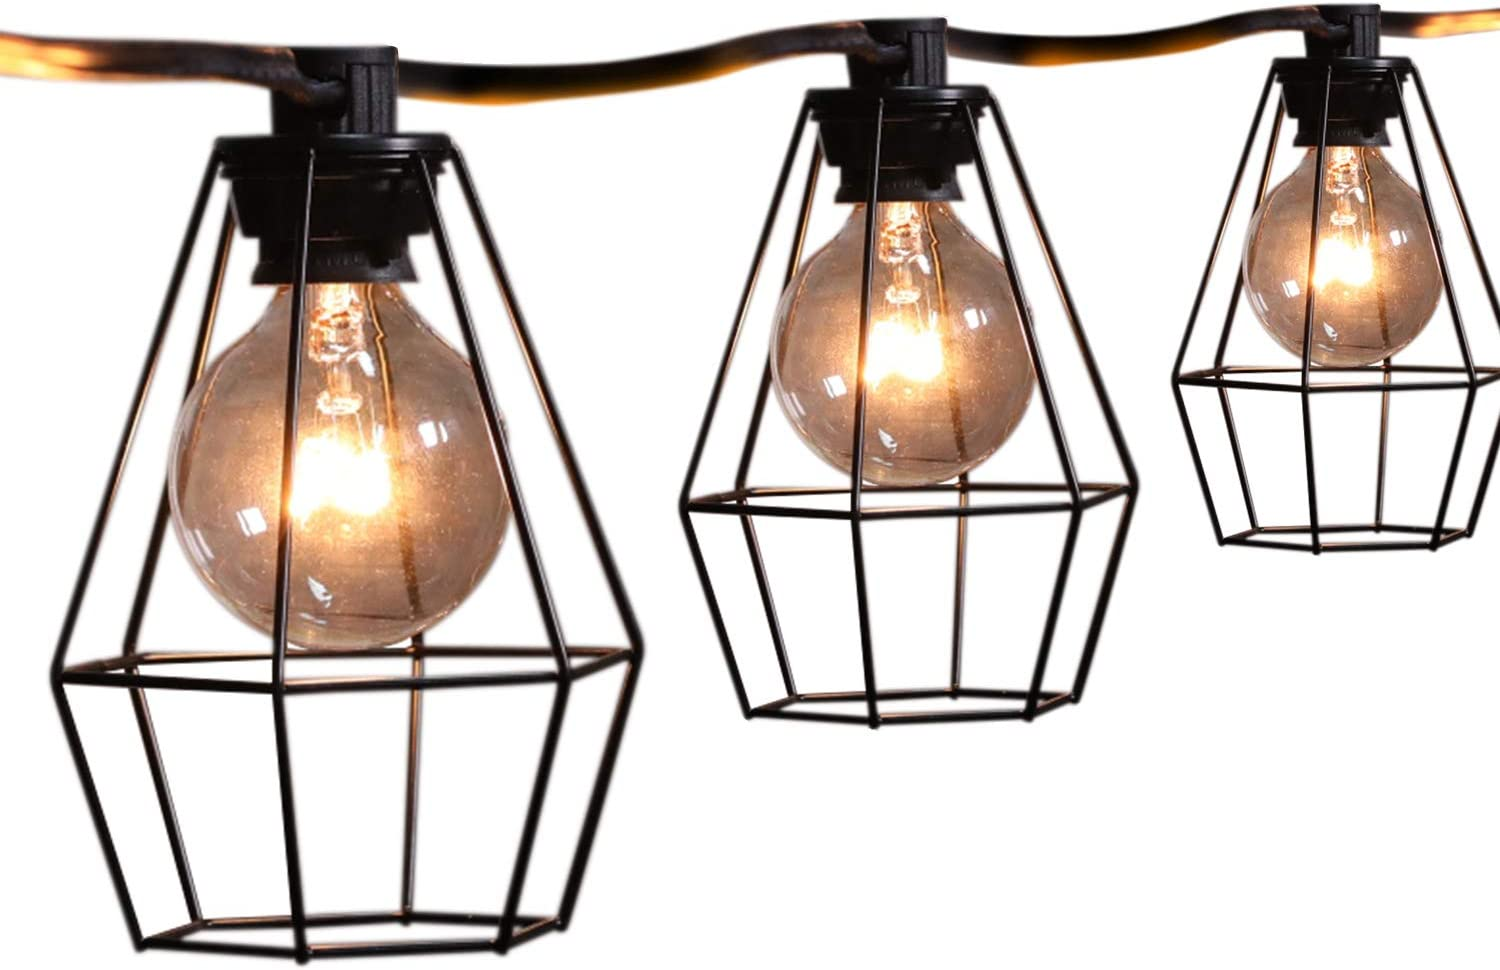 20FT Outdoor Patio String Lights with 12 Clear G40 Bulbs and 12 Vintage Metal Lamp Shades, Indoor/Outdoor Hanging Lights for Cafe Backyard Garden Porches Deck Market Pergola Garden Decor, Black